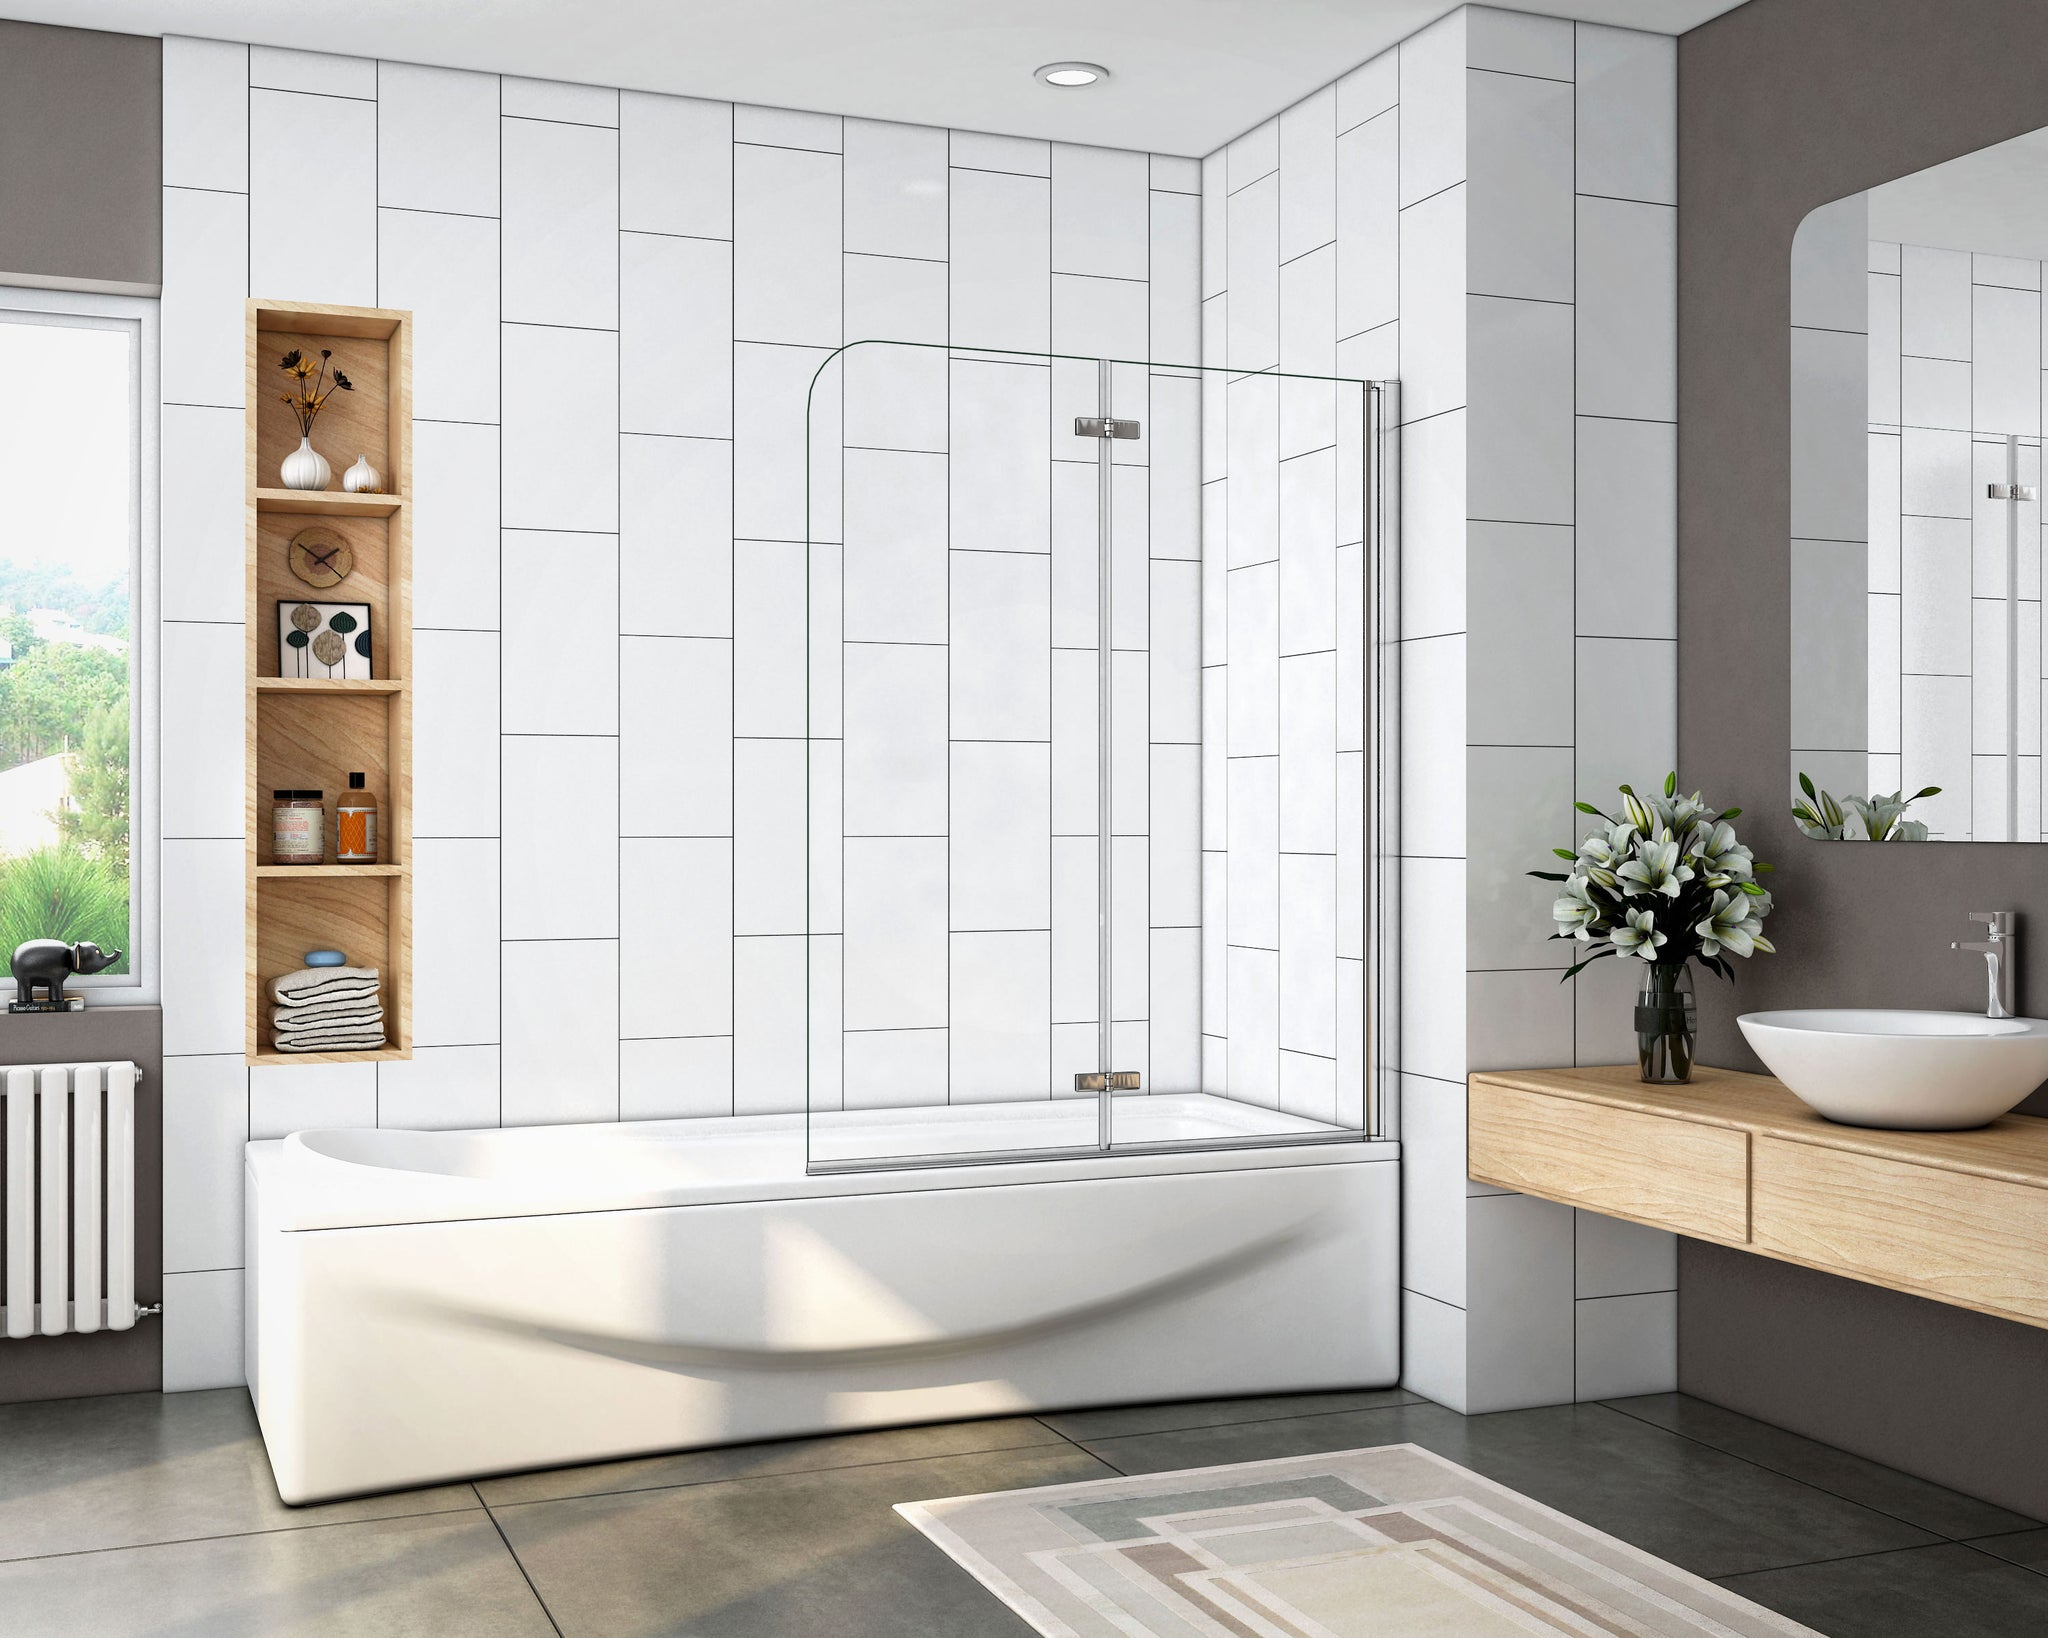 Mampara de baño con Panel pivotante de 180°, Cristal Antical de 6 mm